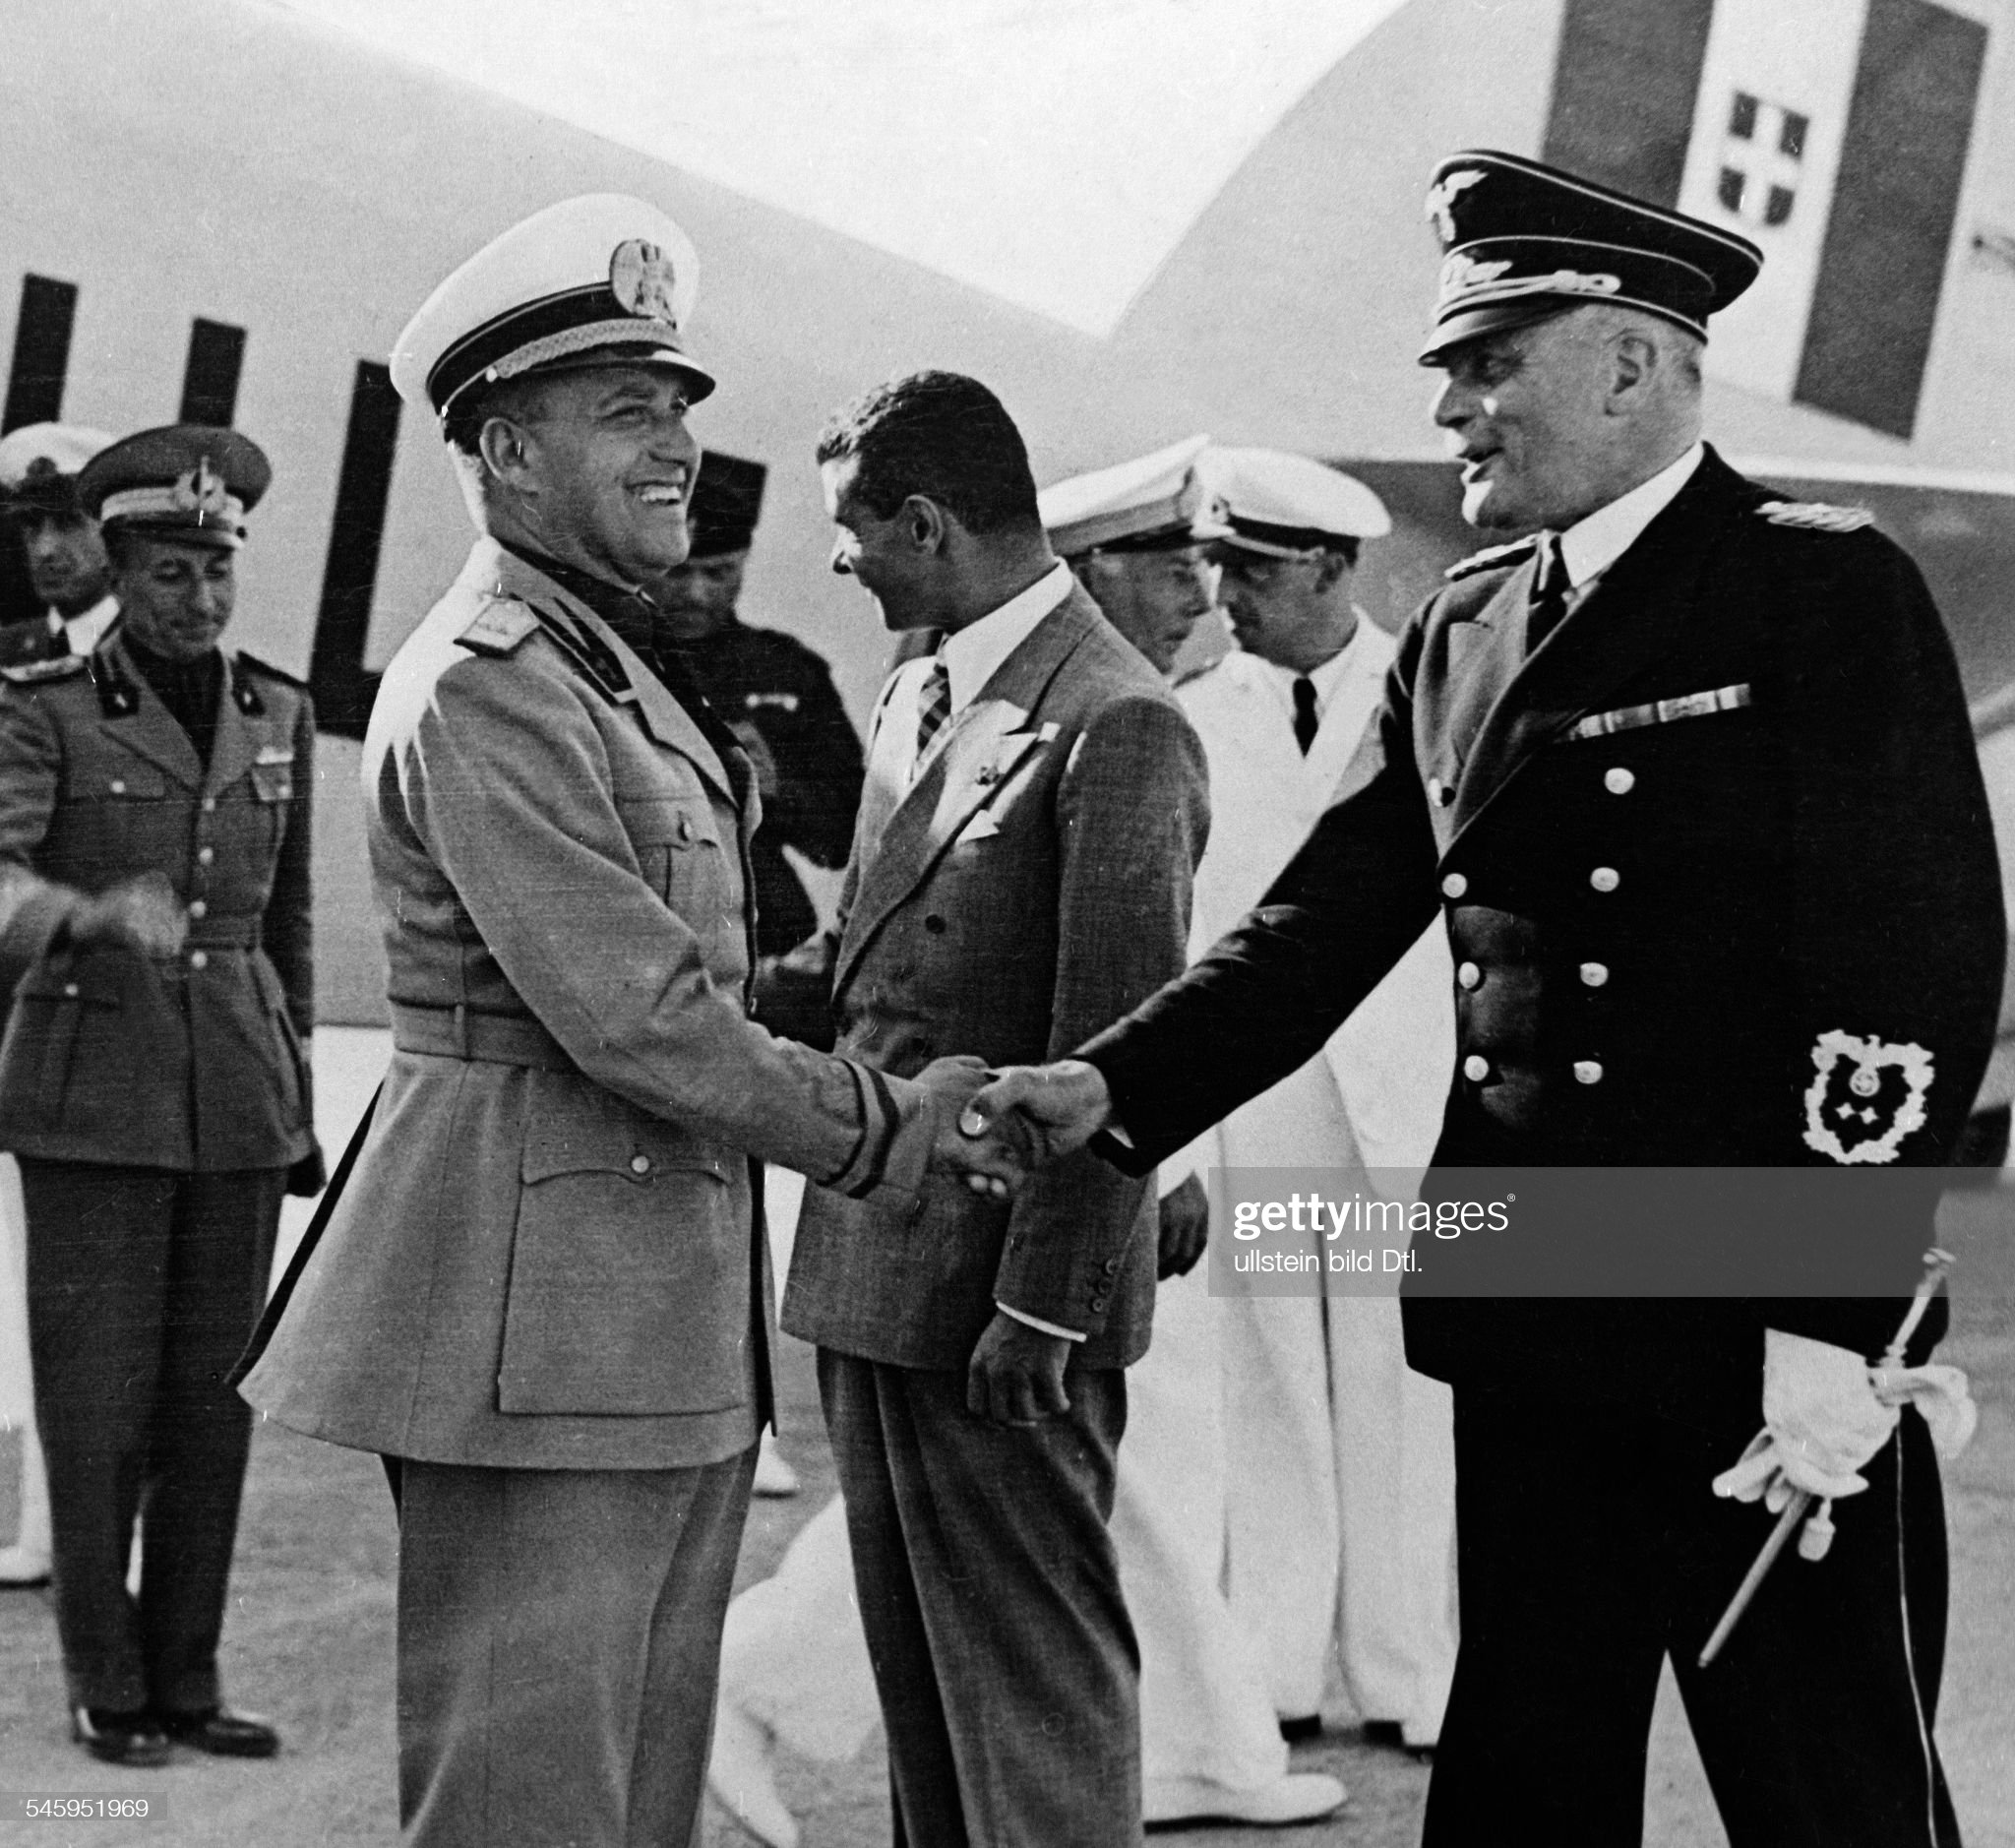 Ciano, Galeazzo - Politician, Italy*18.03.1903-11.01.1944+Foreign Minister Ciano on a visit to Fuschl, shaking hands with German ambassador Dr. Hans-Georg v. Mackensen (right) when leaving on Salzburg airport- 13.08.1939 - Photographer: Presse-Illust : Nachrichtenfoto